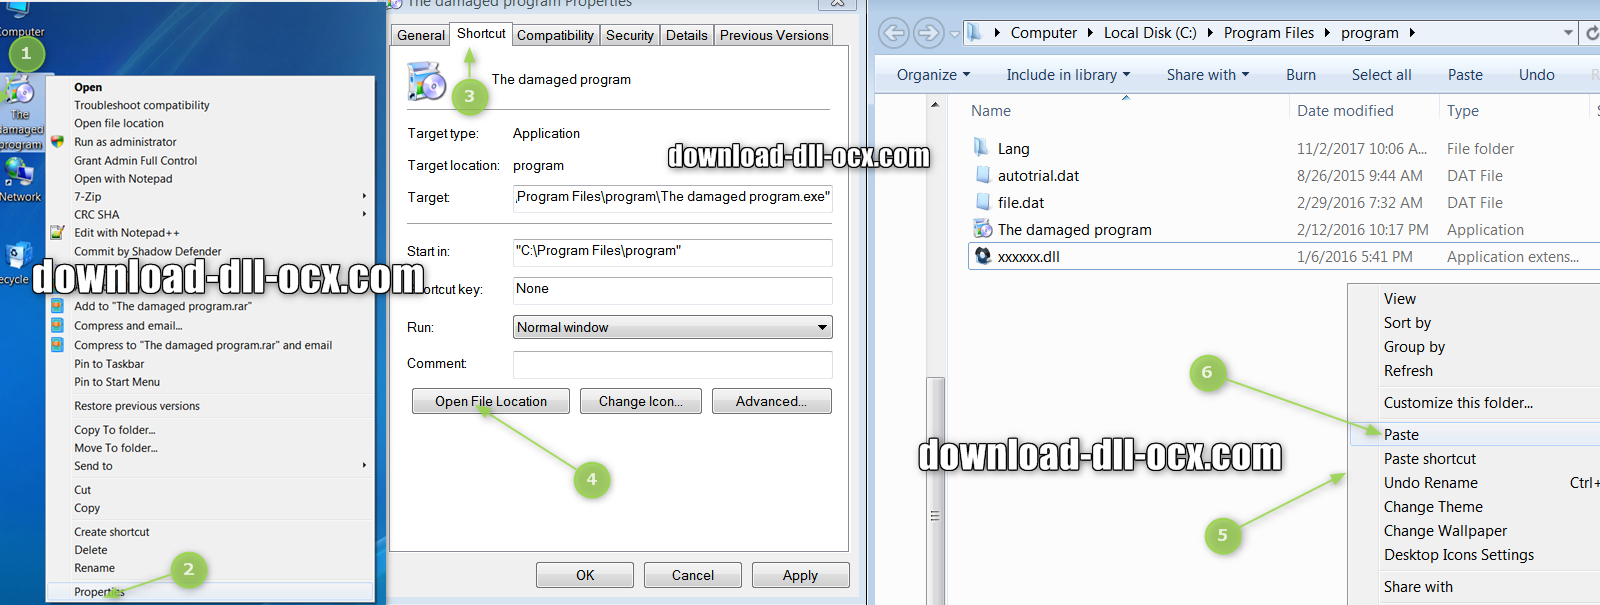 how to install ciodm.dll file? for fix missing